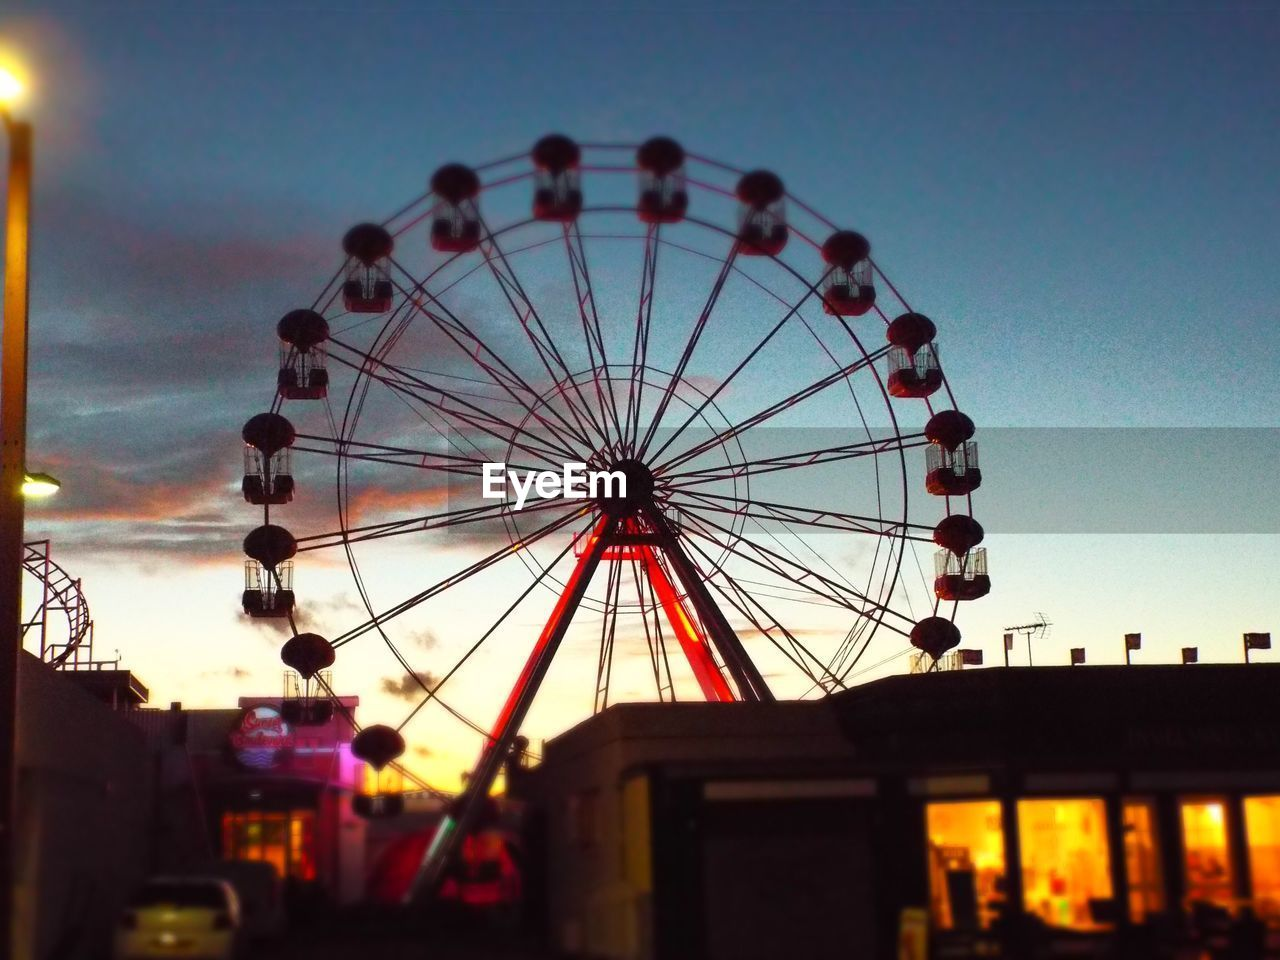 amusement park, ferris wheel, arts culture and entertainment, amusement park ride, big wheel, dusk, sunset, built structure, no people, outdoors, low angle view, sky, clear sky, silhouette, building exterior, architecture, night, illuminated, carousel